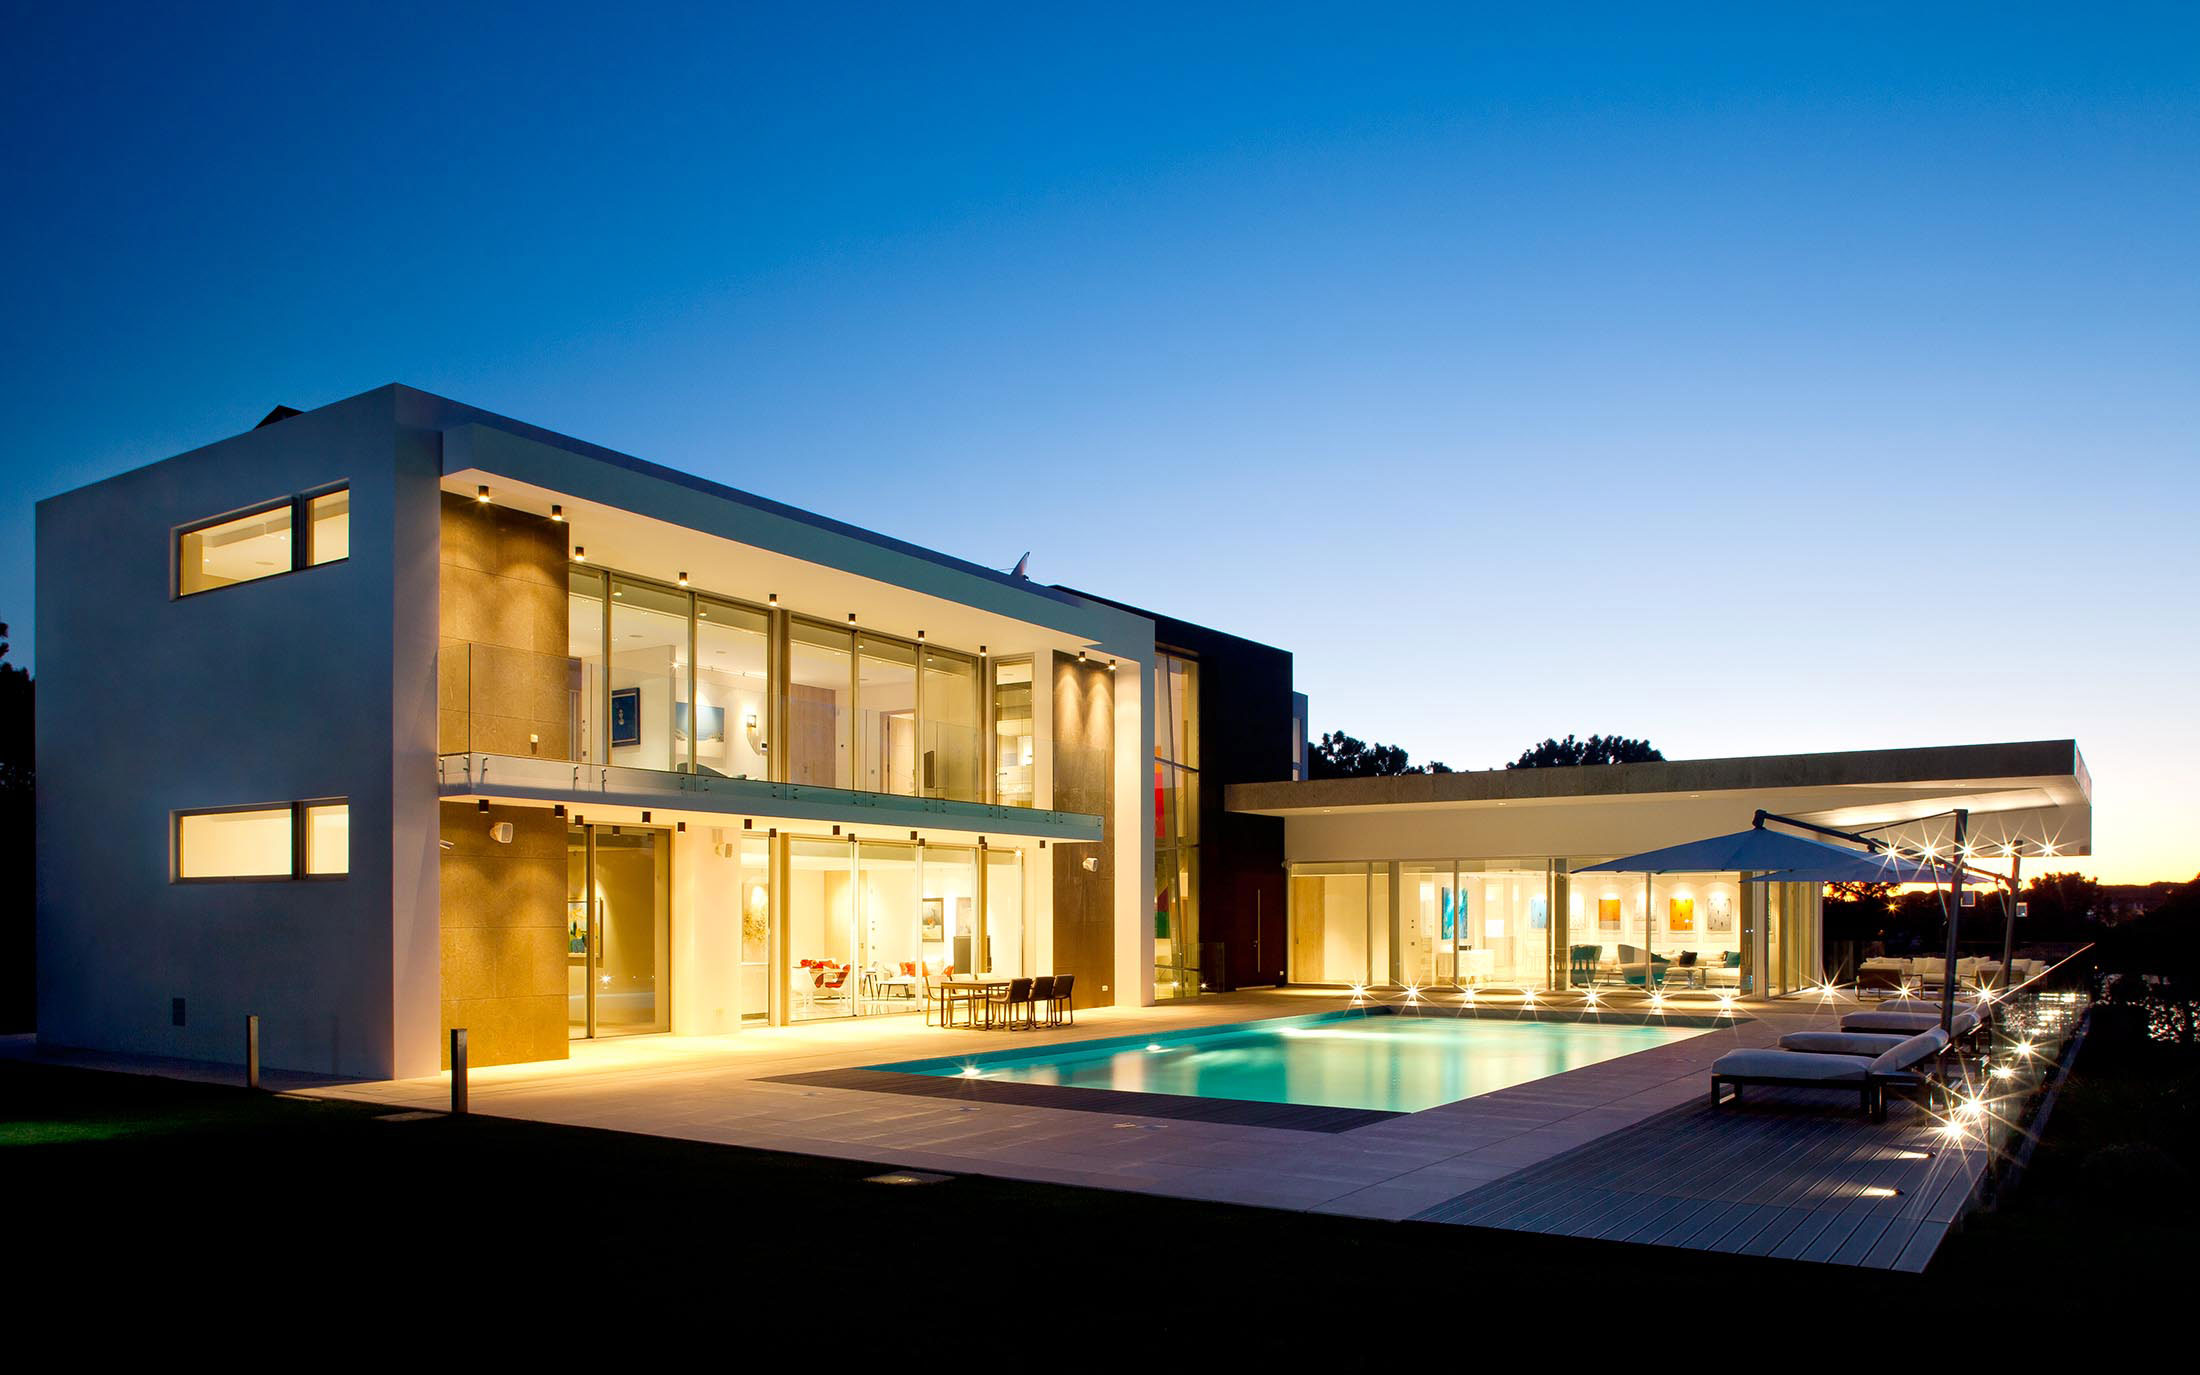 Evening, Pool, Lighting, Family Home in Portugal